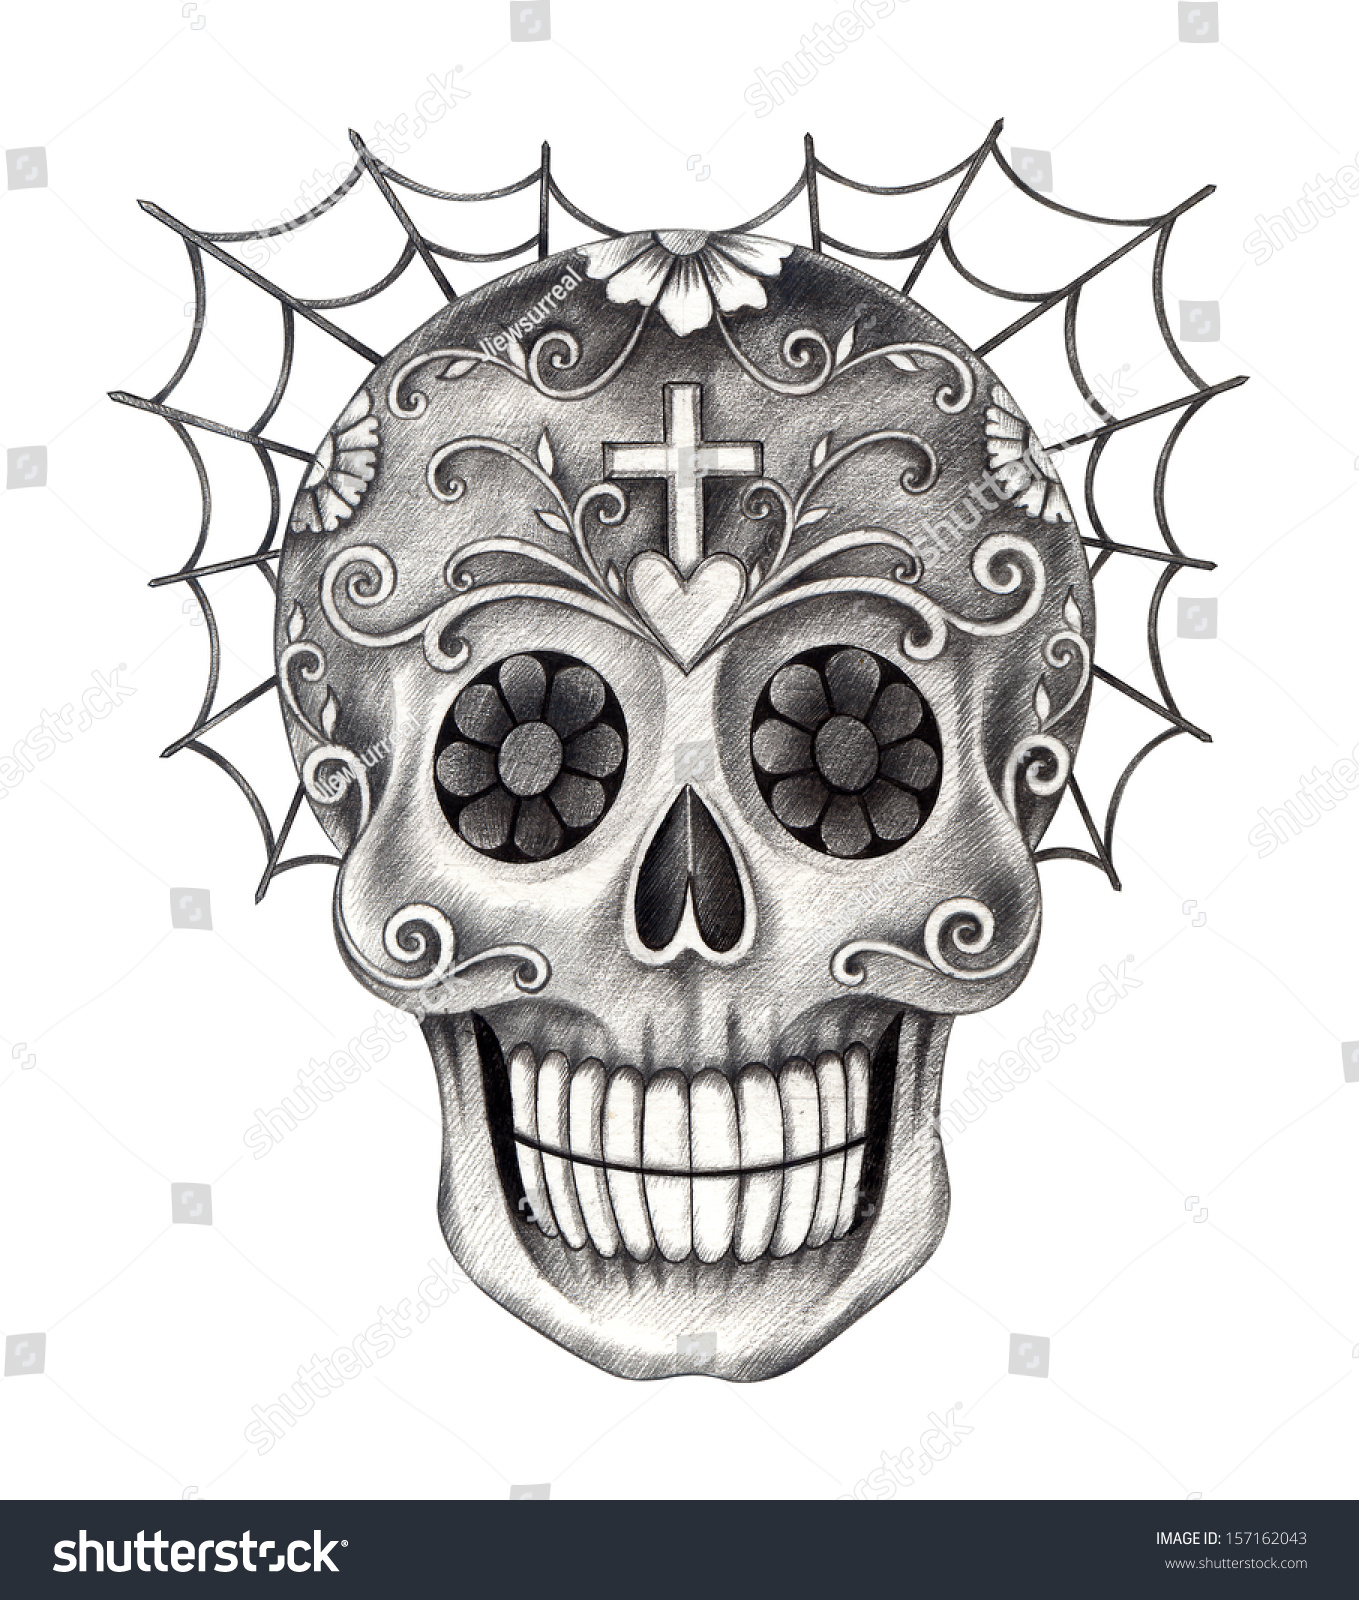 Day Of The Dead Hand Tattoo: Art Skull Day Dead Hand Drawing Stock Illustration